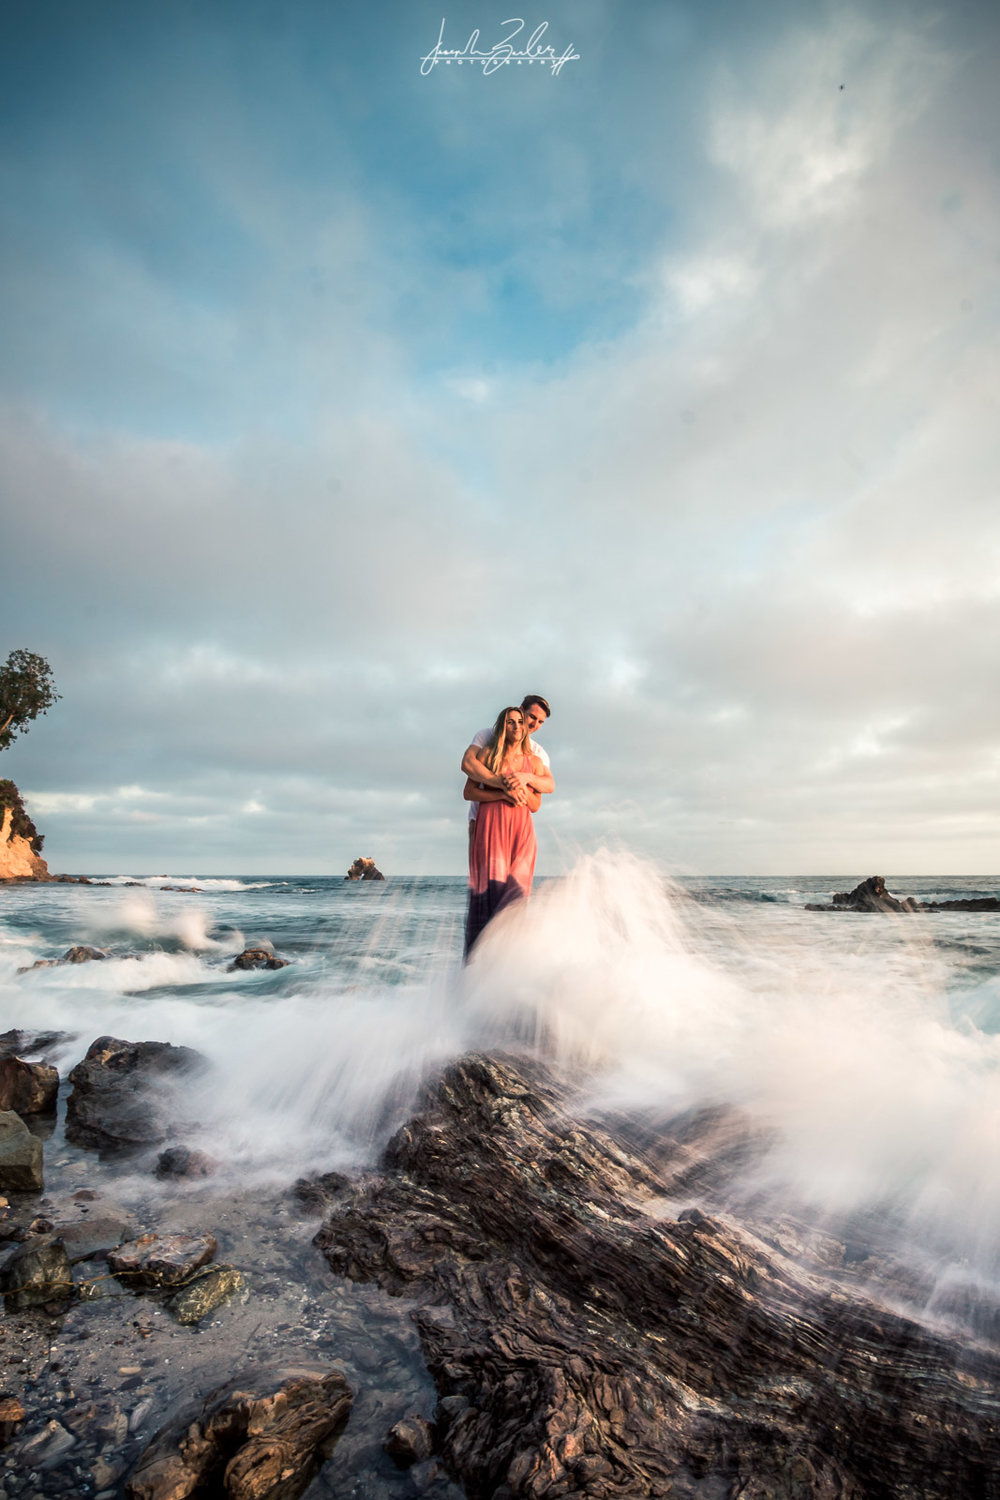 Engagement session photograph of a couple holding each other on top tide rocks With breaking waves during  during Golden hour at little corona del mar beach